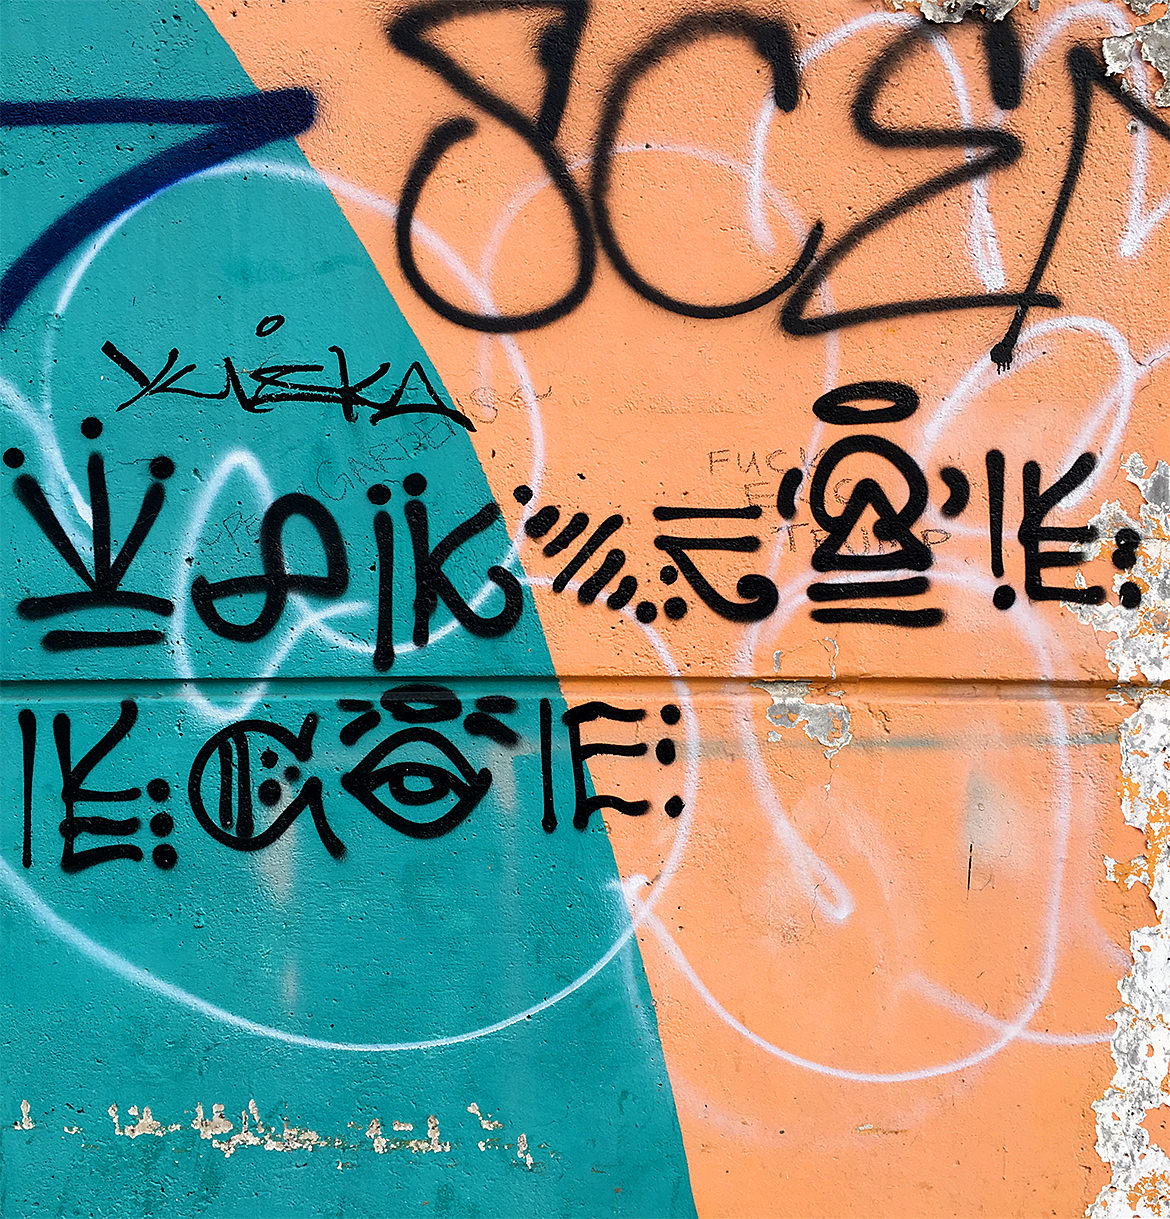 teal and orange wall with spray pain hieroglyphics